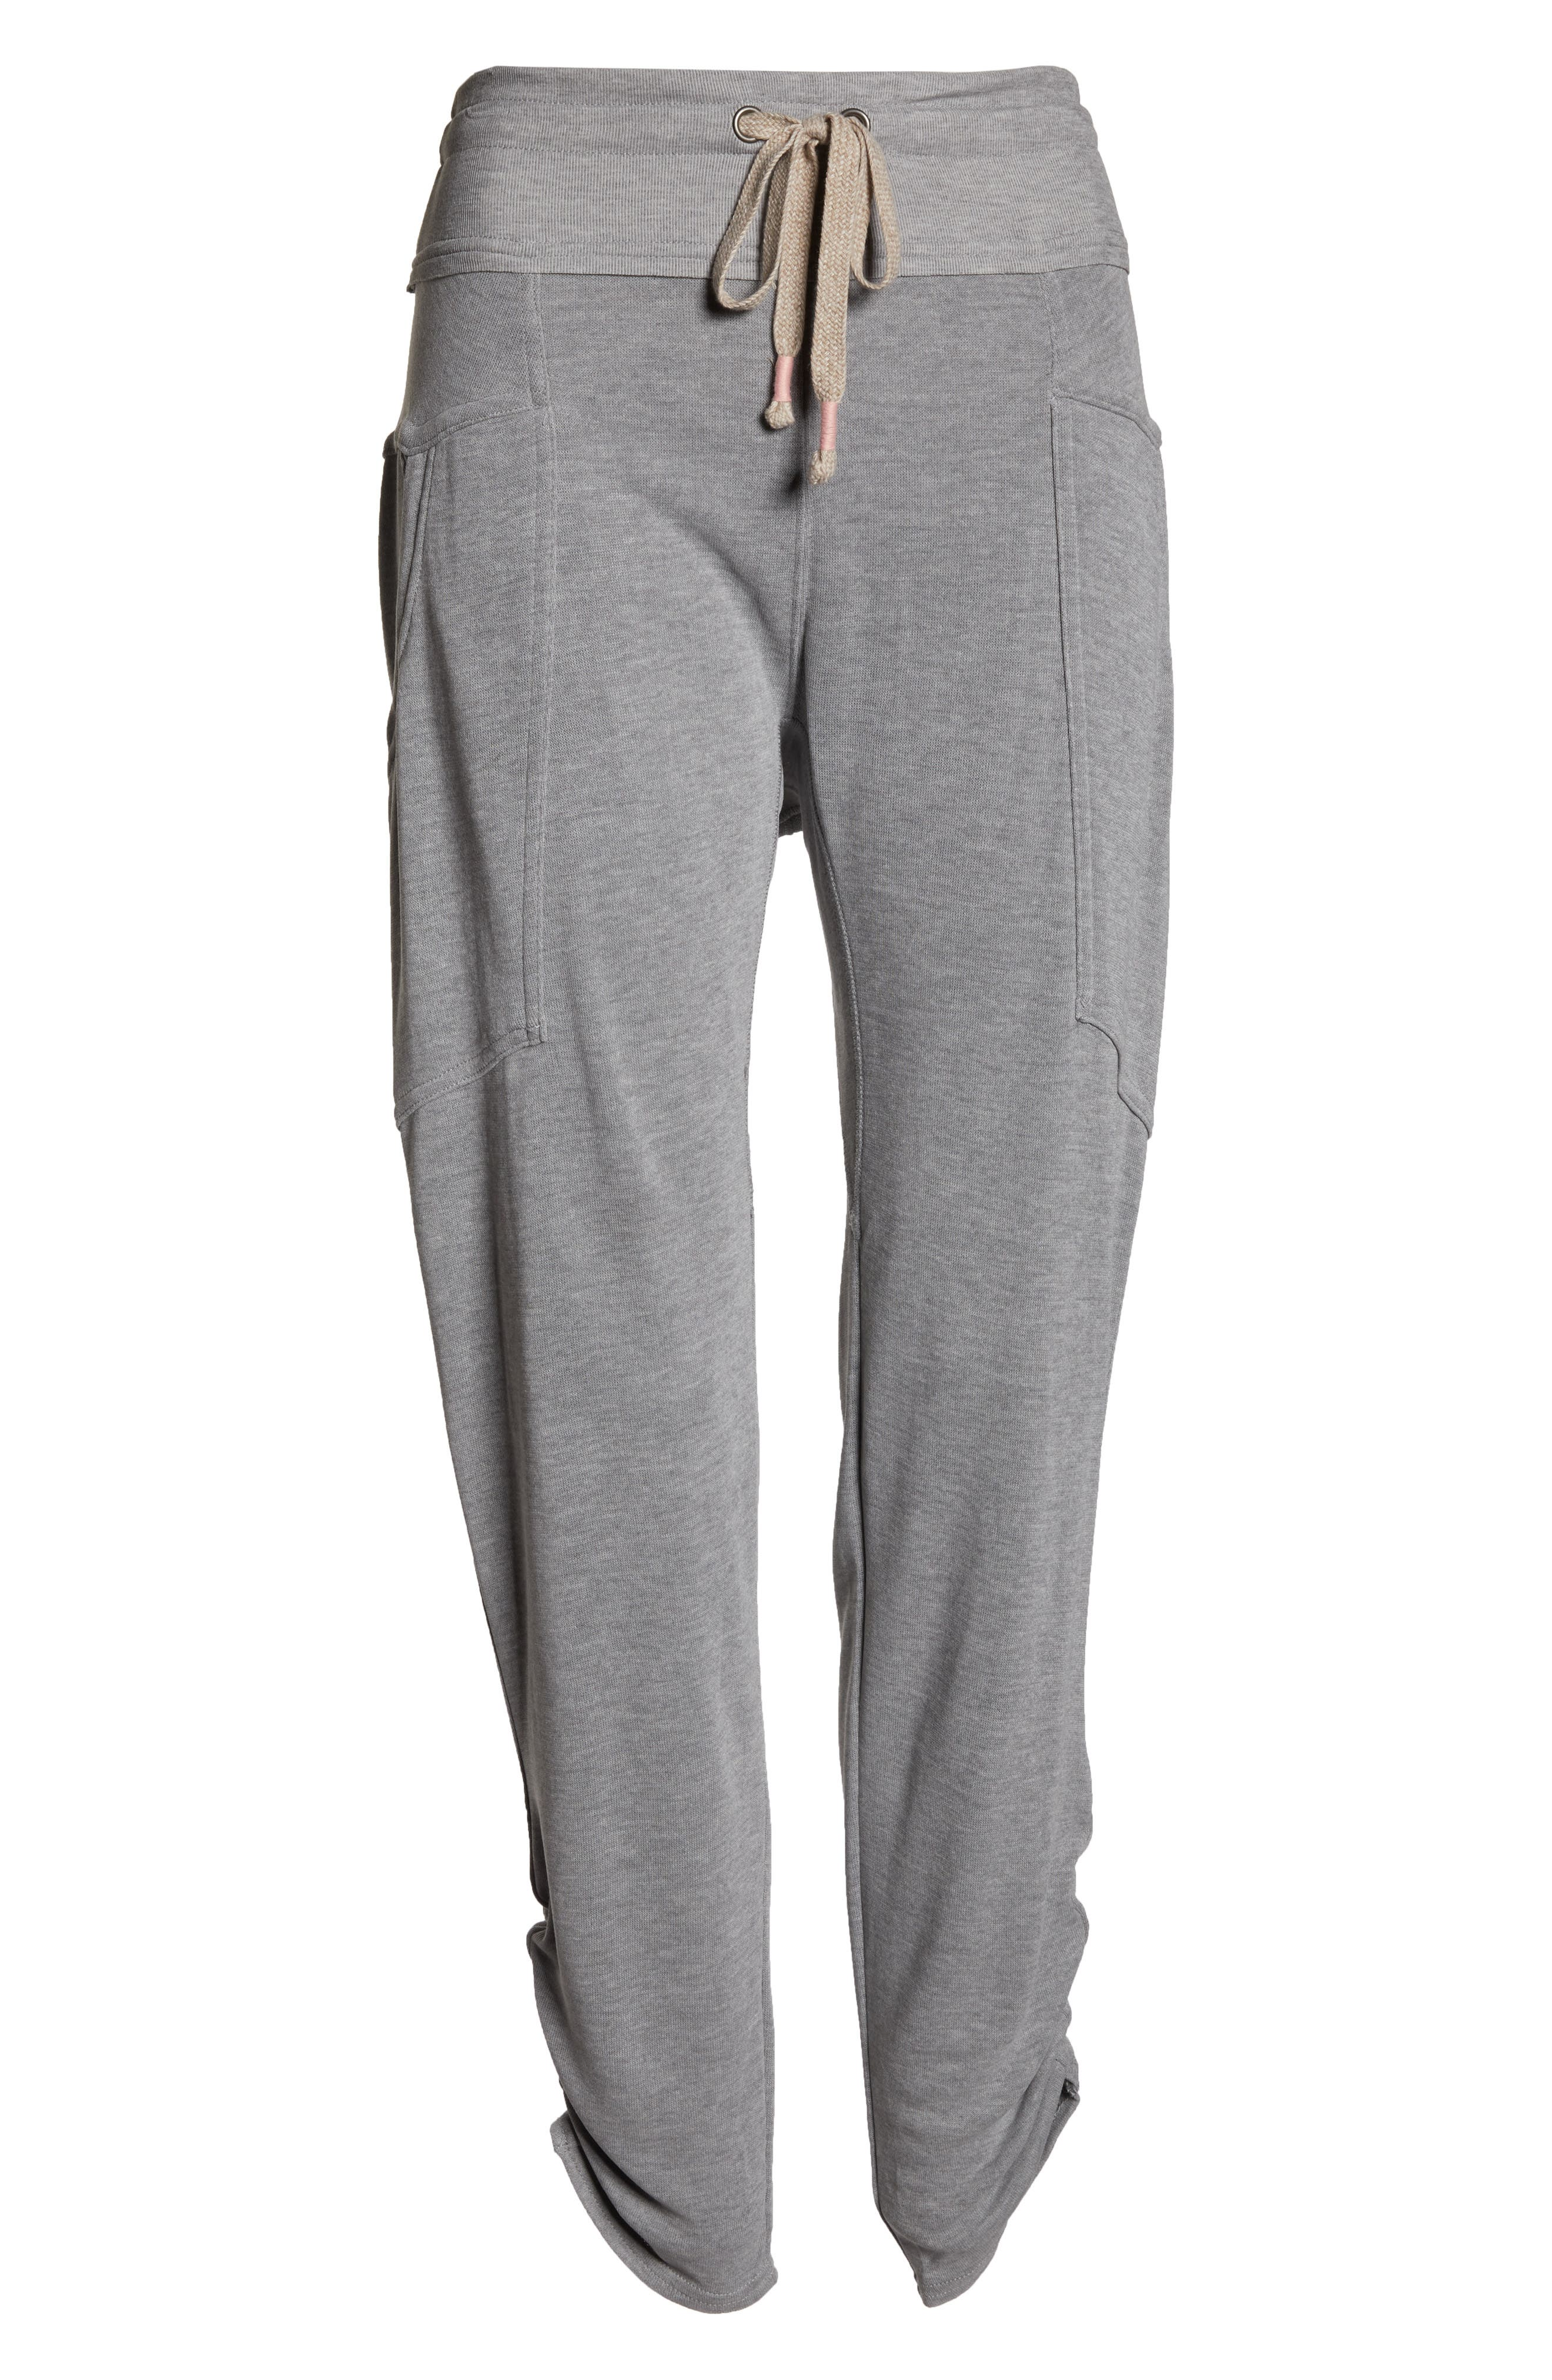 Free People FP Movement Ready Go Jogger Pants,                             Alternate thumbnail 6, color,                             GREY COMBO